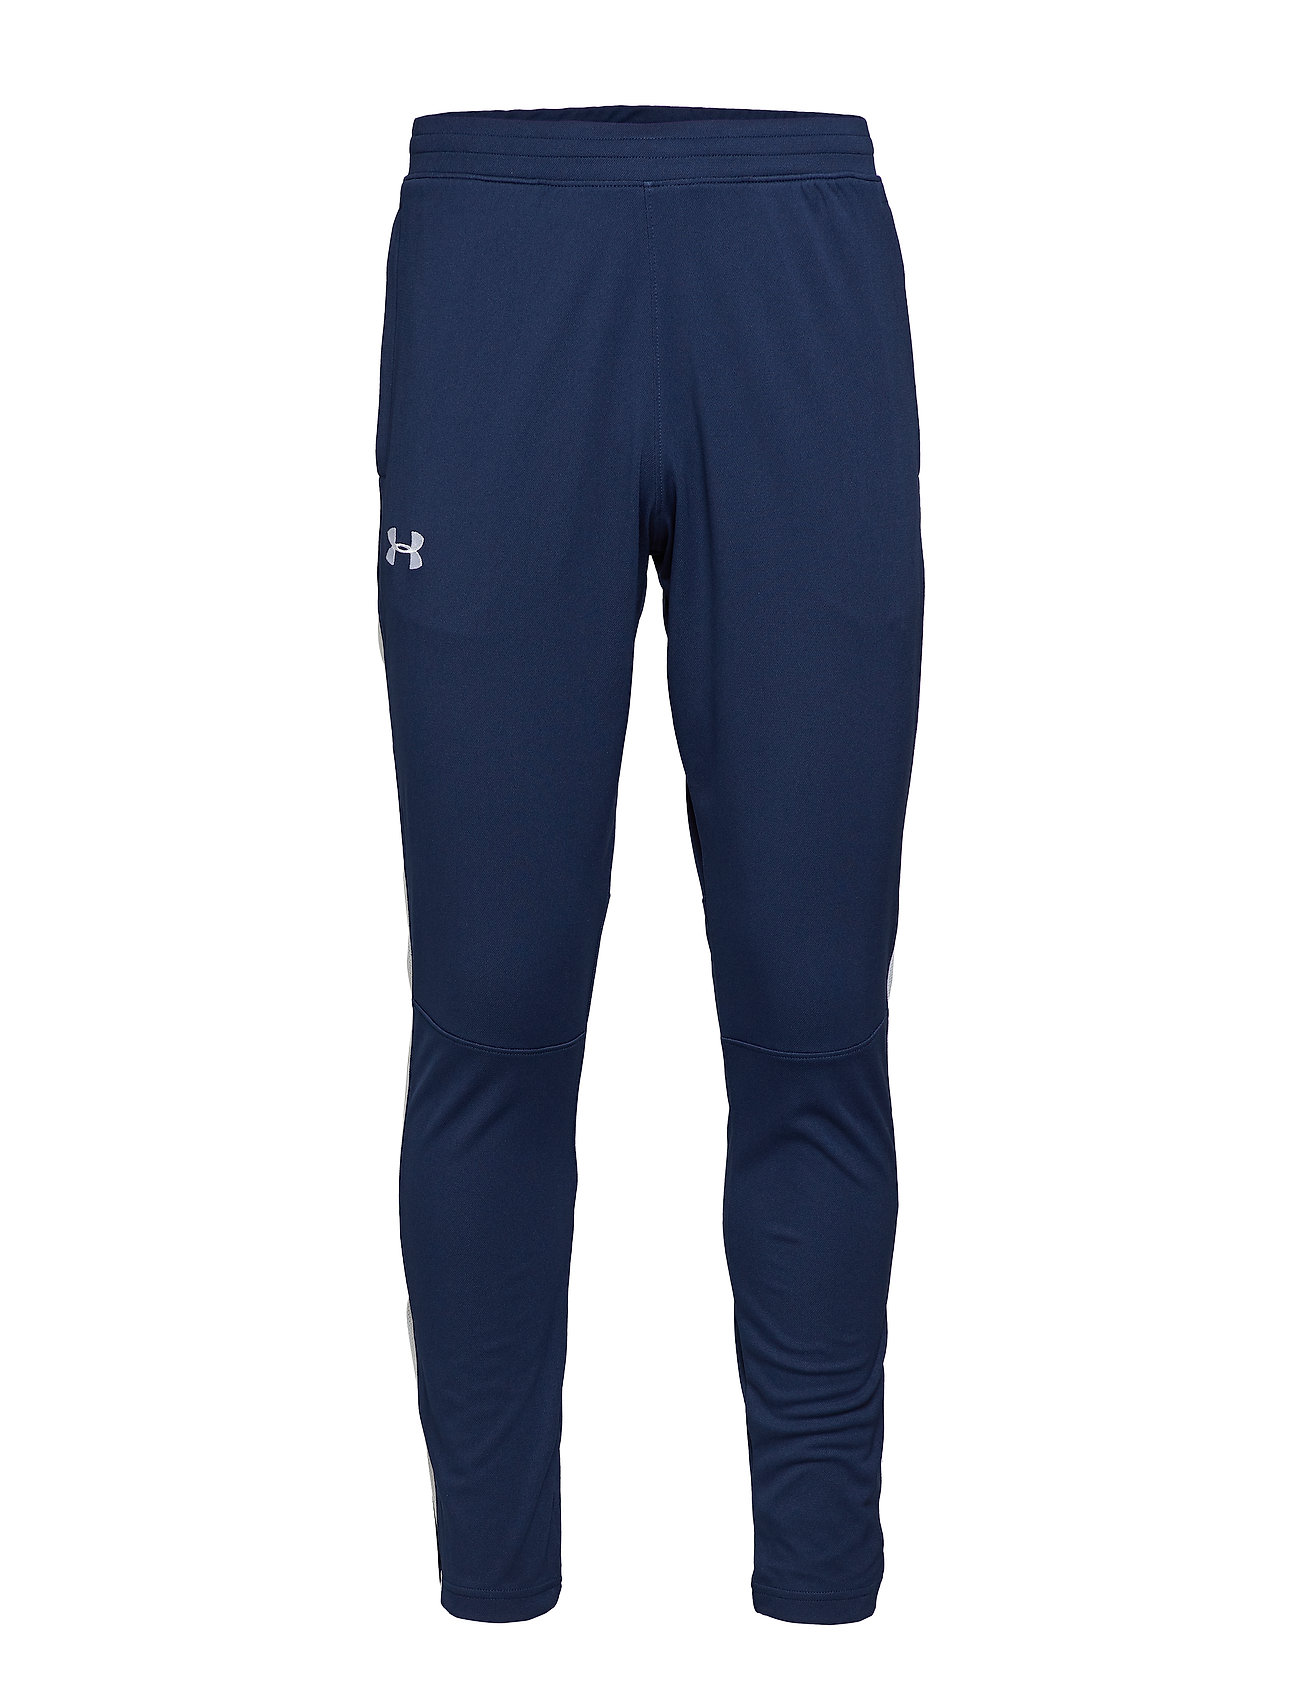 Under Armour SPORTSTYLE PIQUE TRACK PANT - ACADEMY